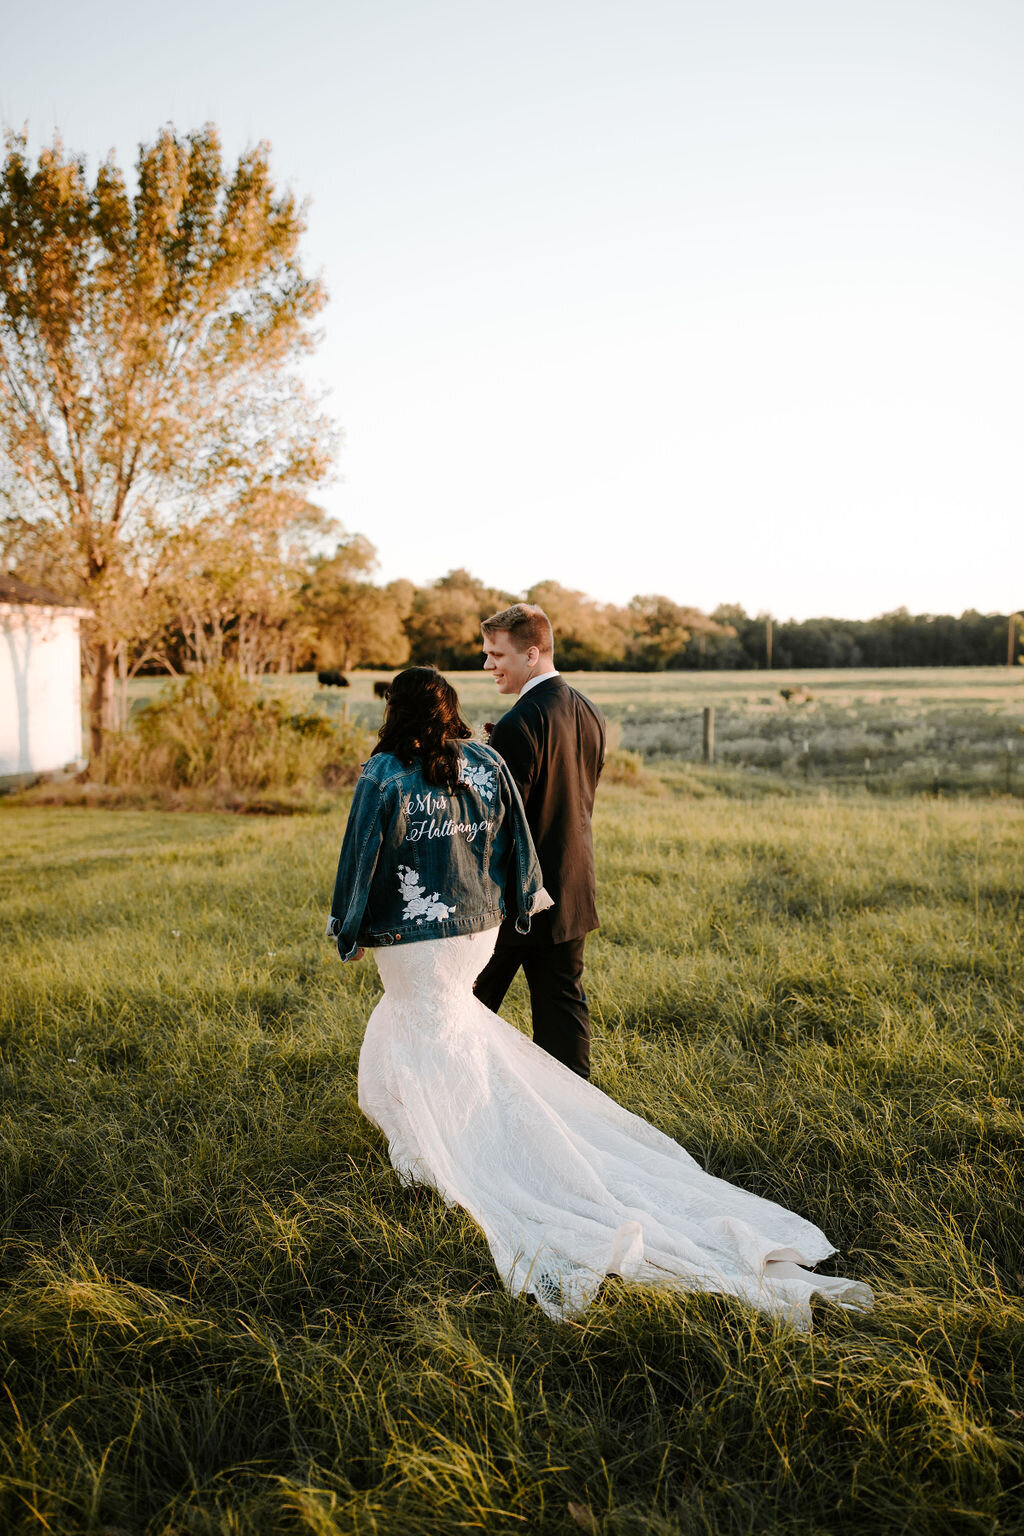 A bride and groom walking through a field at sunset, the bride is wearing a denim jacket with her new last name on it